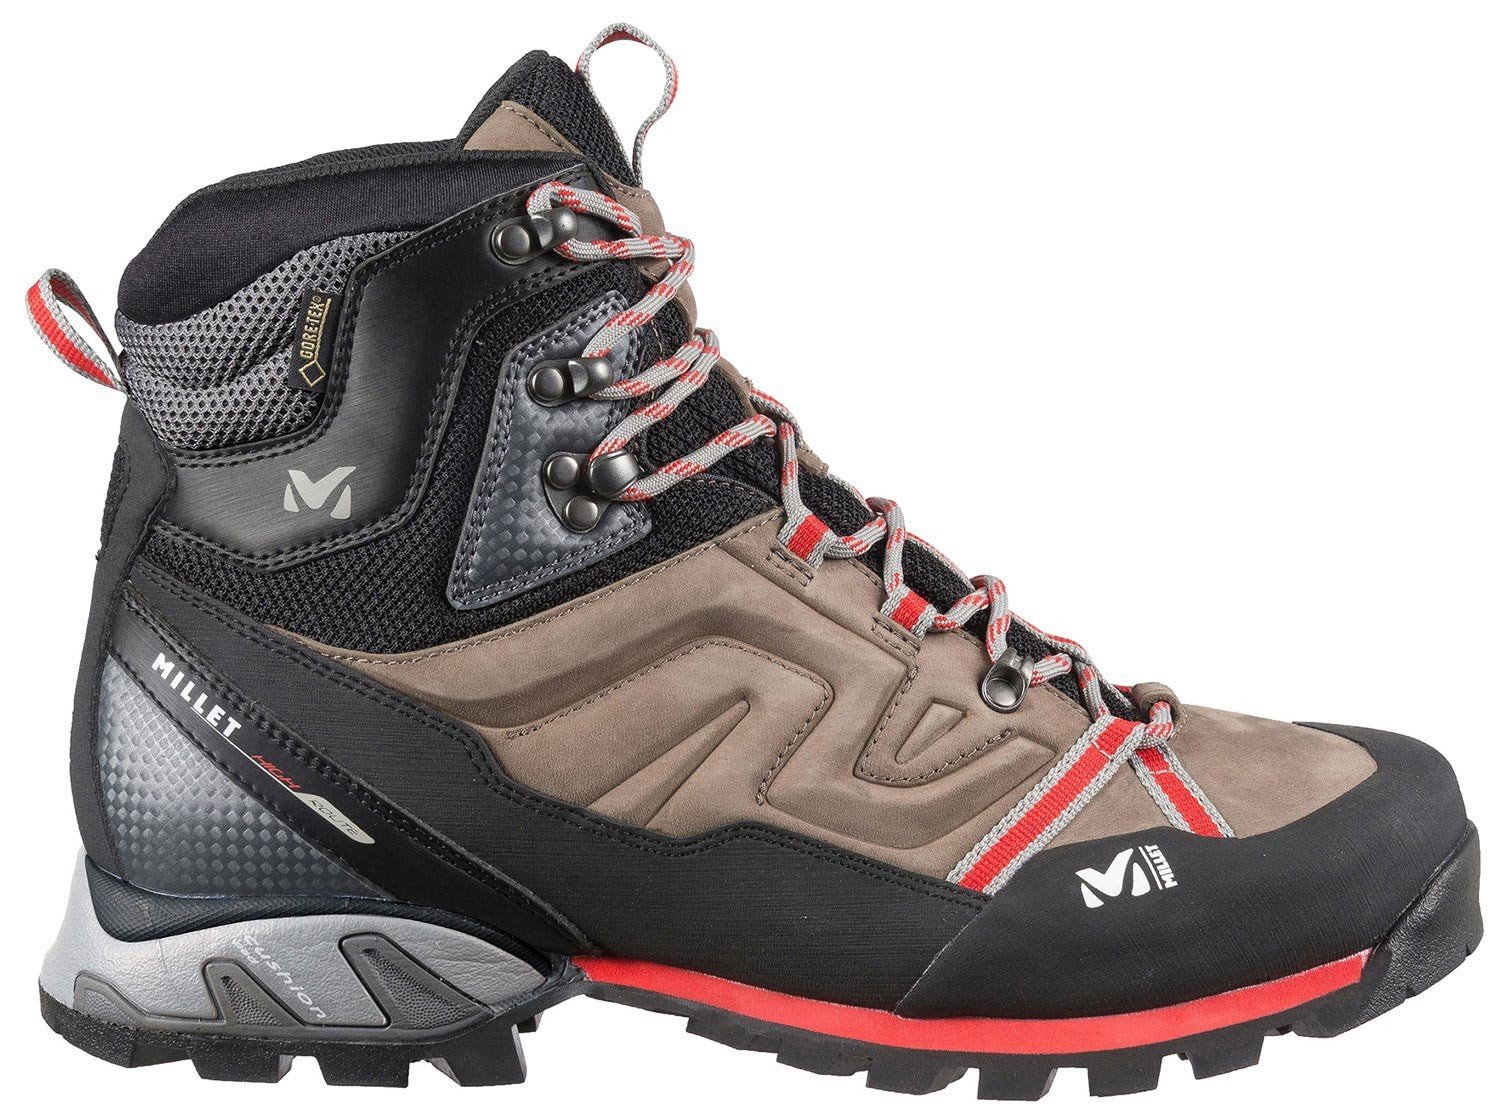 Best Hiking Shoes for the Inca Trail Trek and Machu Picchu